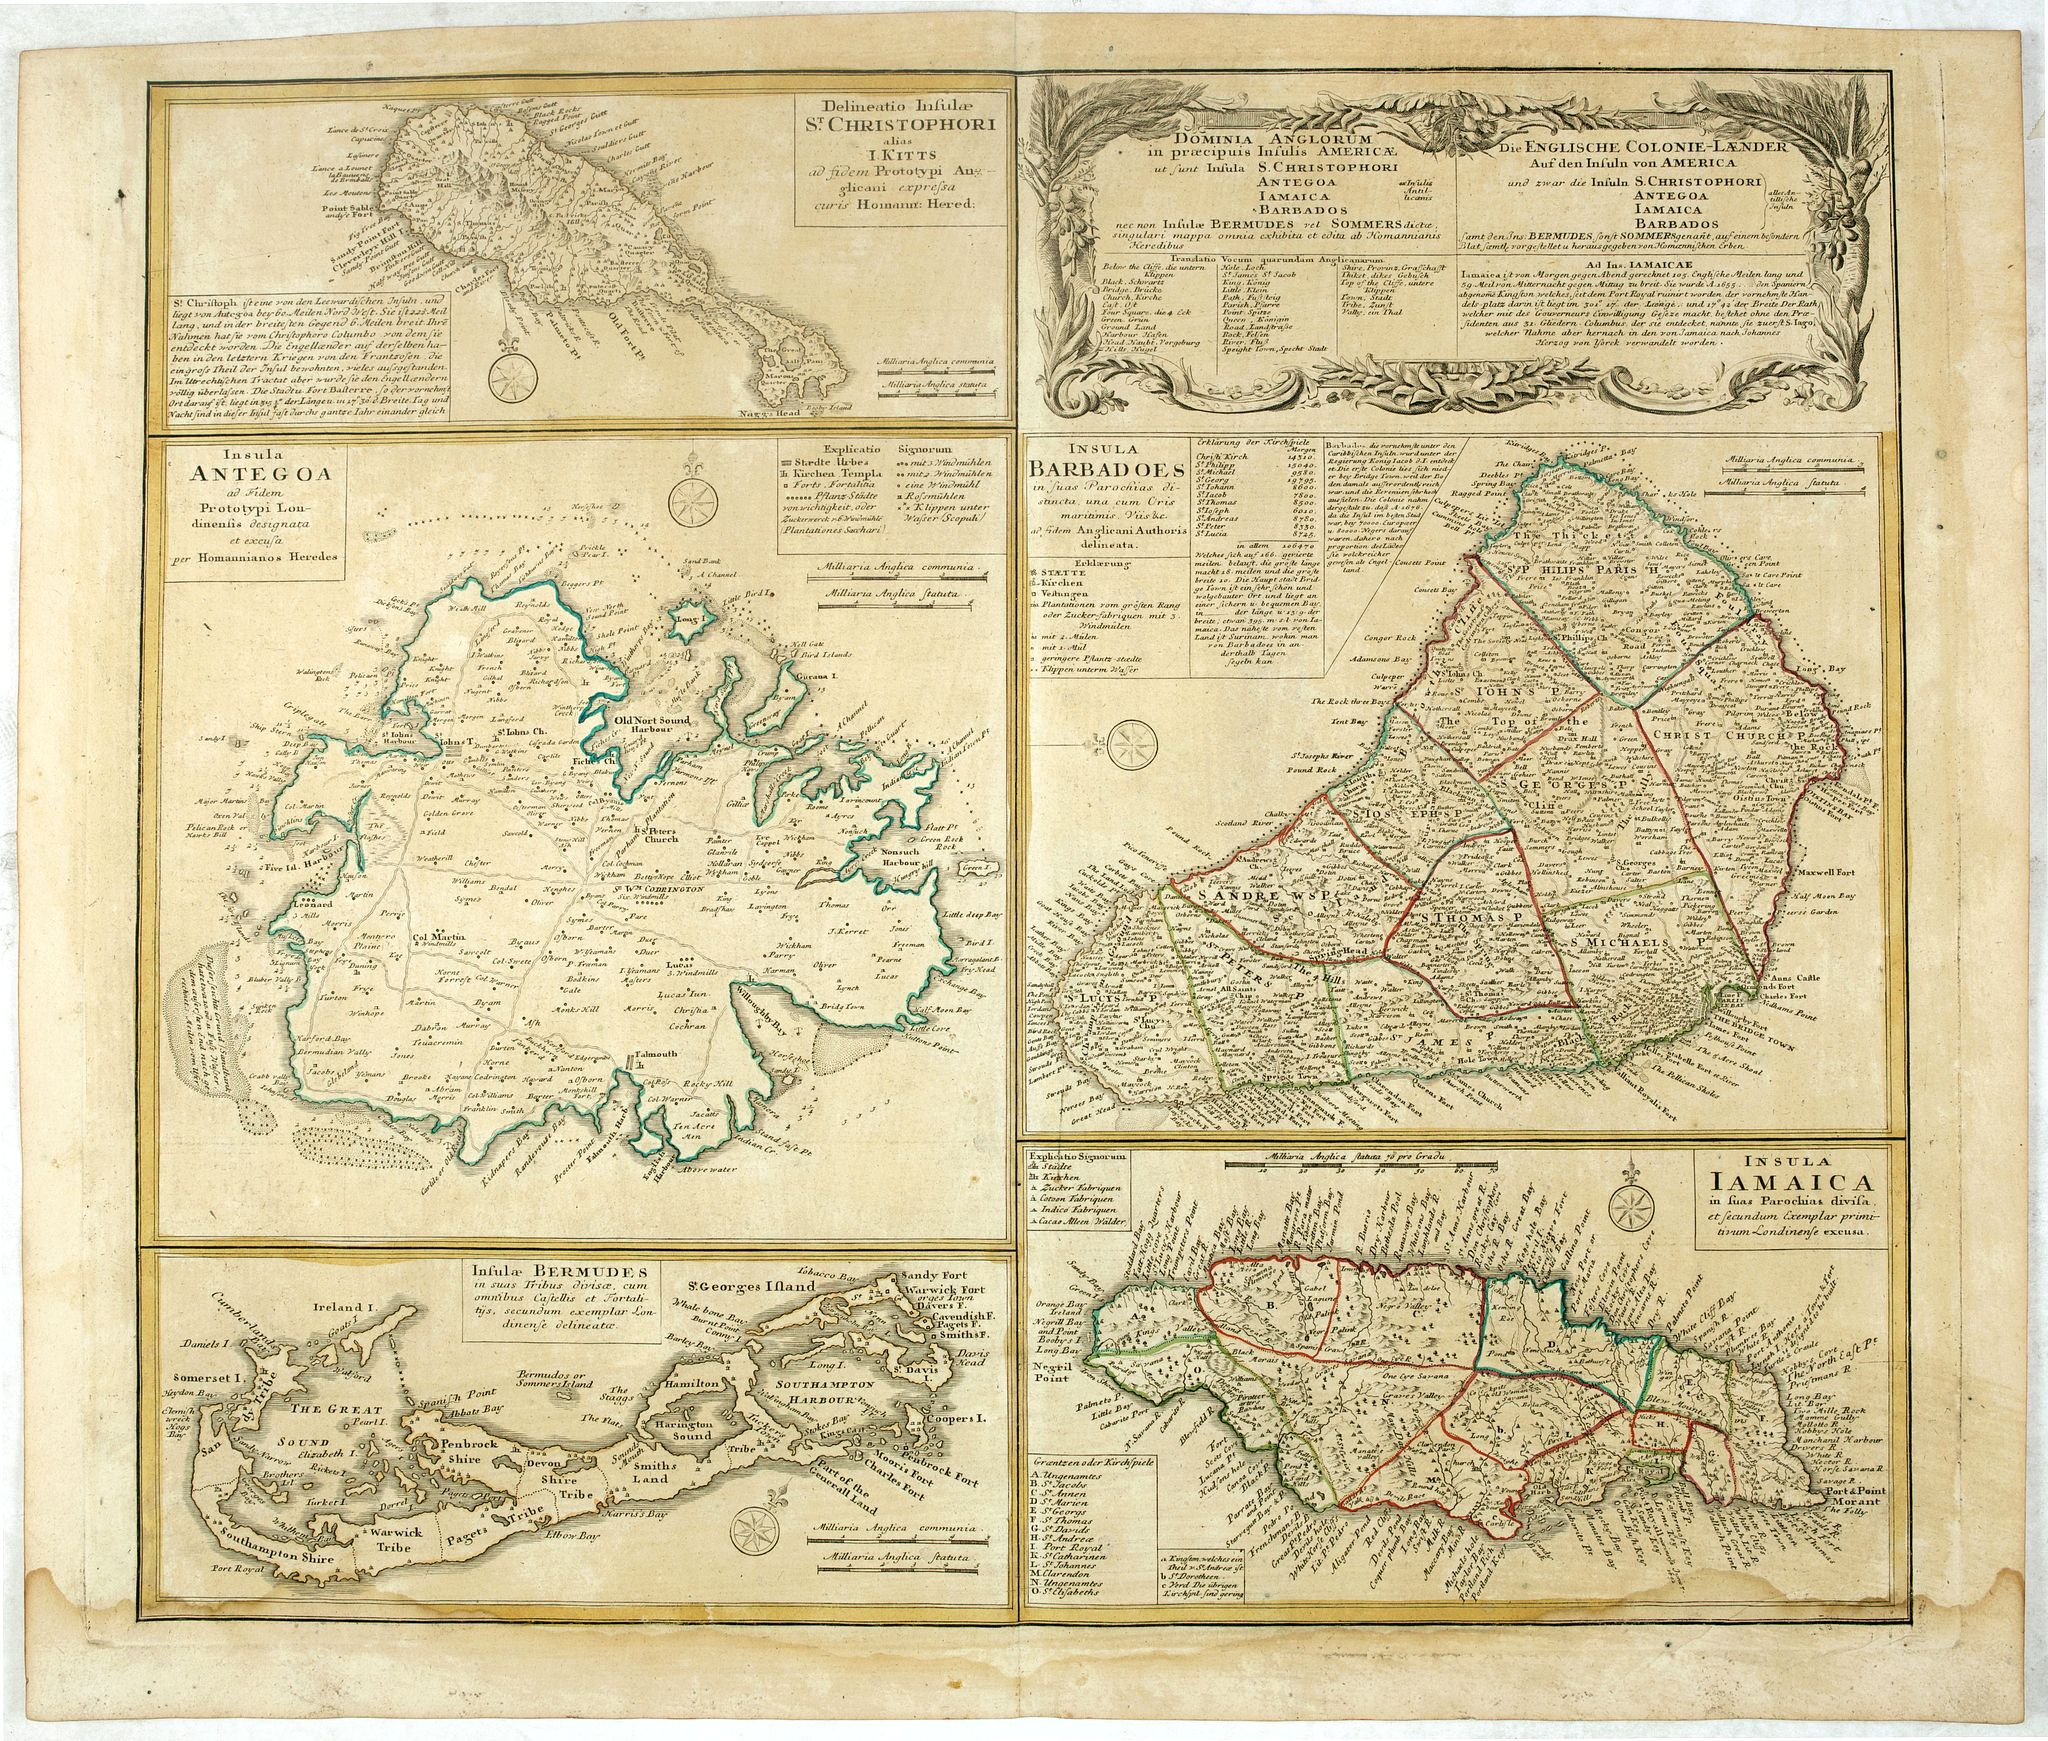 HOMANN HEIRS.,  [Five maps on one sheet] Dominia Anglorum in praecipuis Insulis Americae ut sunt Insula S. Christopheri, Antegoa, Iamaica, Barbados nec non Insula Bermudes vel Sommers . . ., antique map, old maps